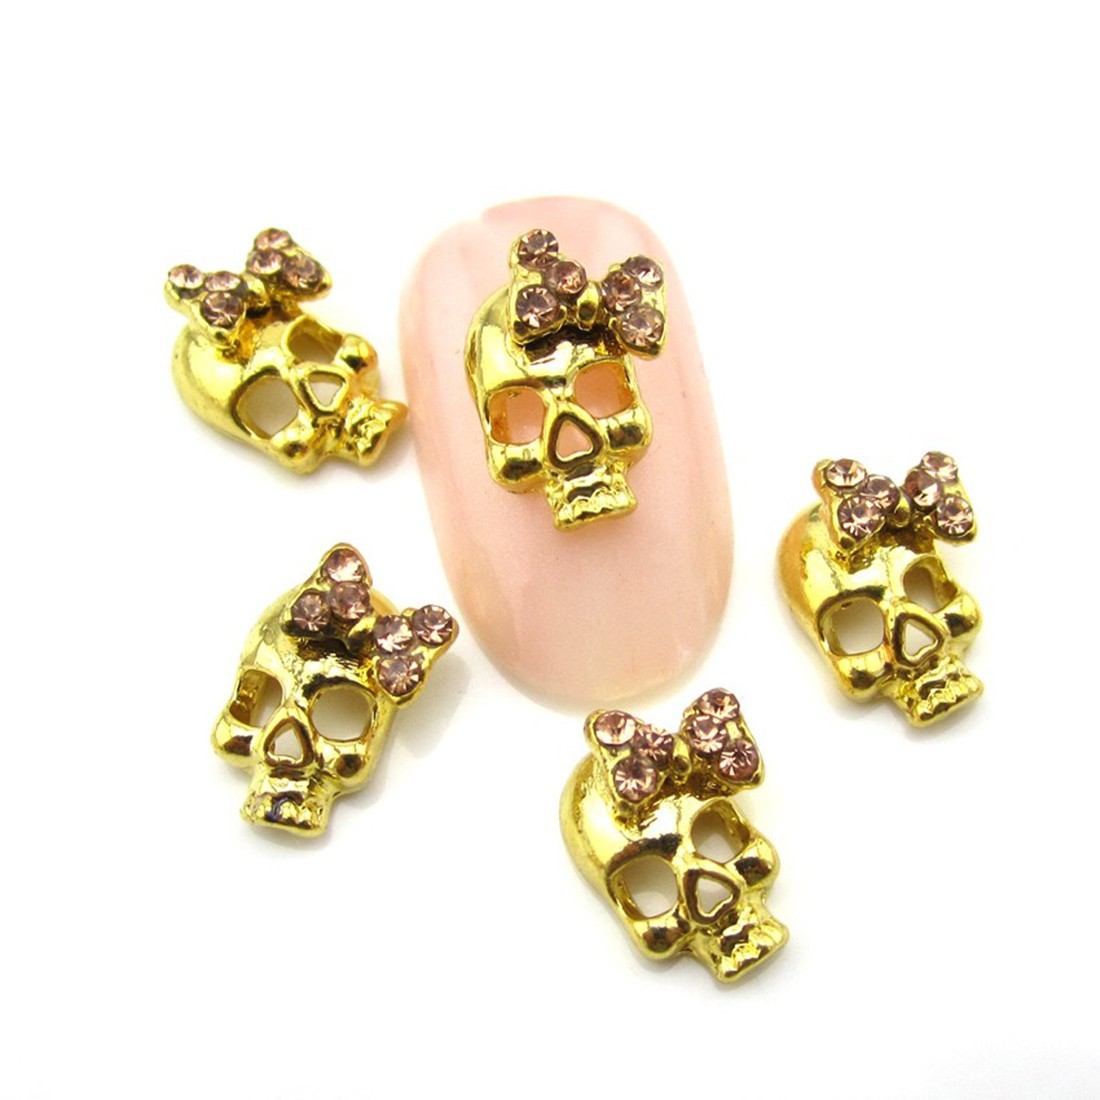 10 Pieces Nail Rhinestone Taro Nail Patch Crystal Shiny 3D Jewel Manicure Manicure Ornaments Trinkets Manicure Decorative Nail